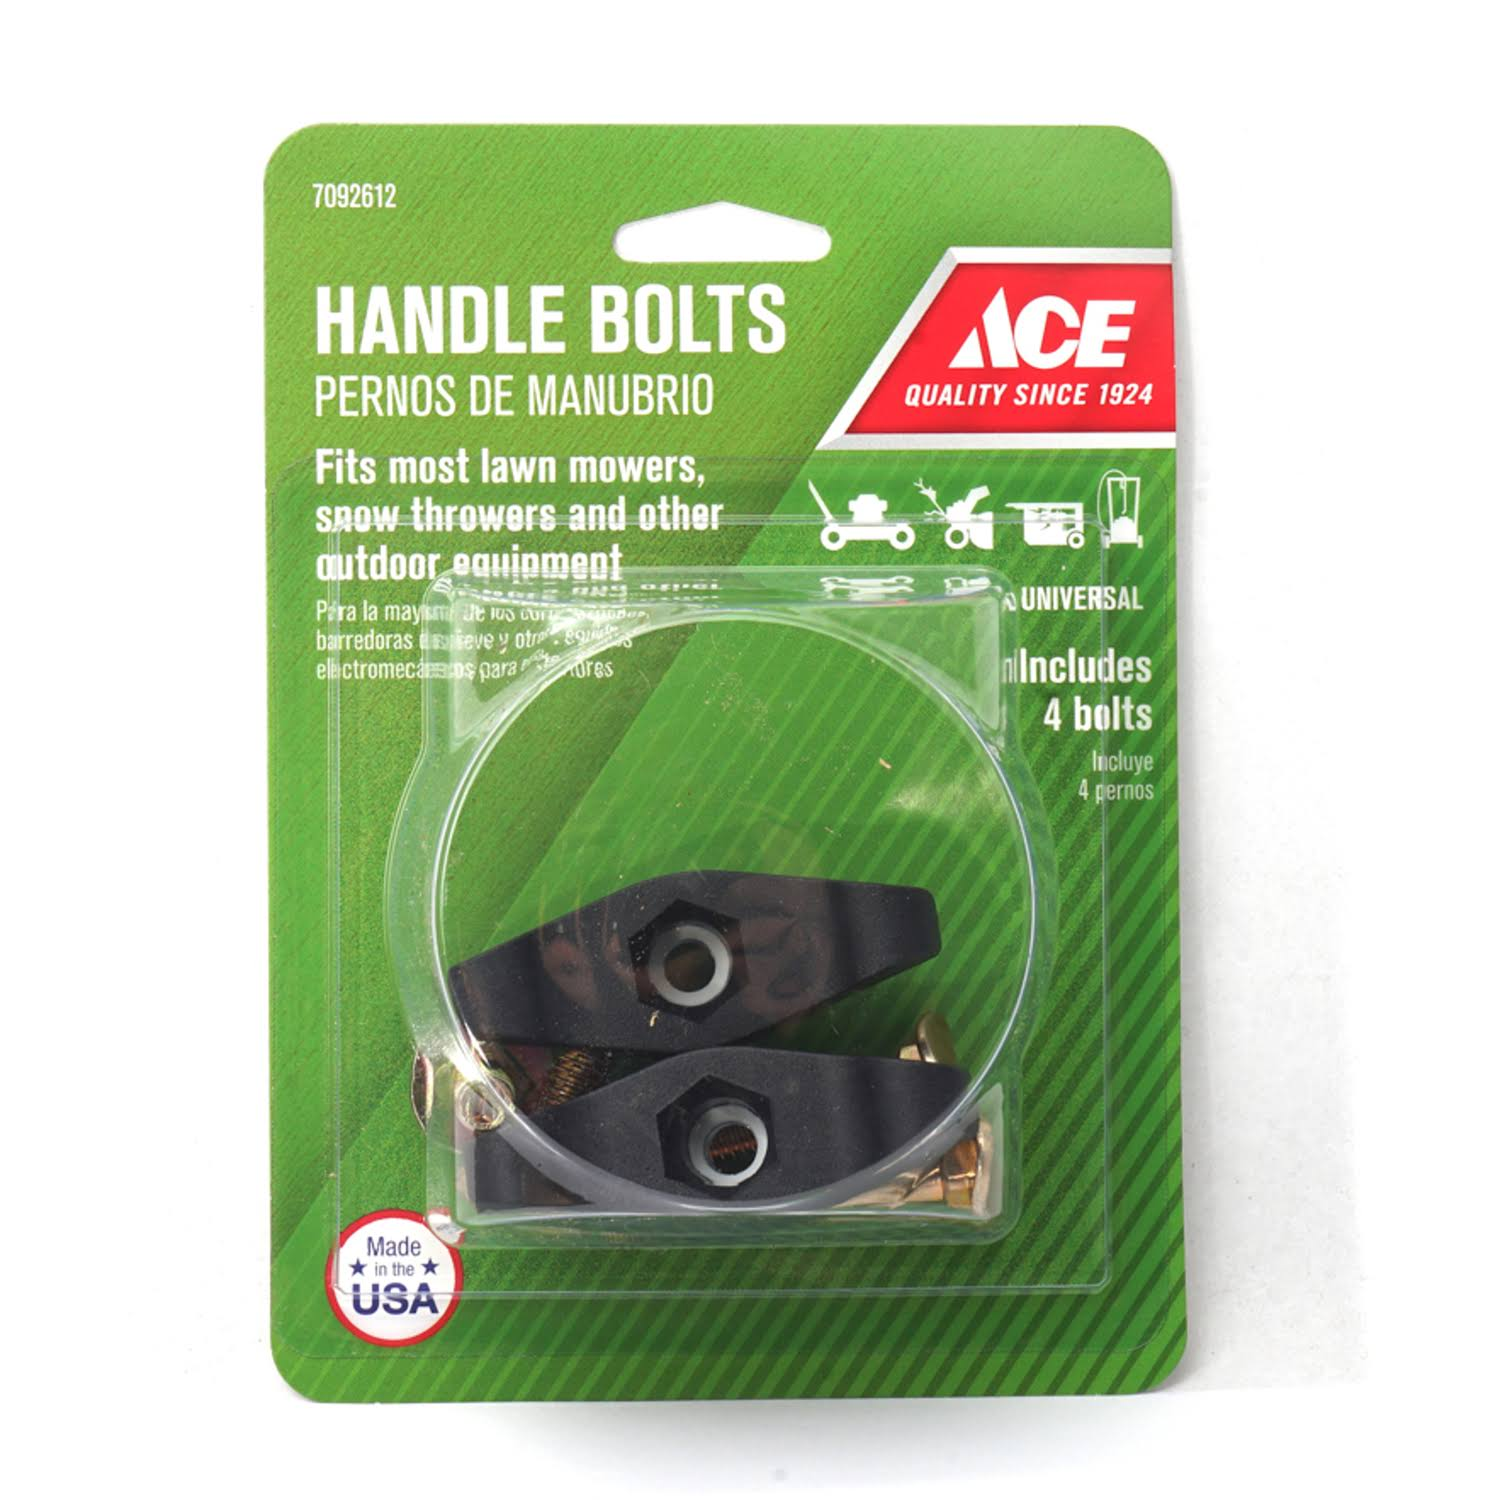 Ace T-Handles Bolts